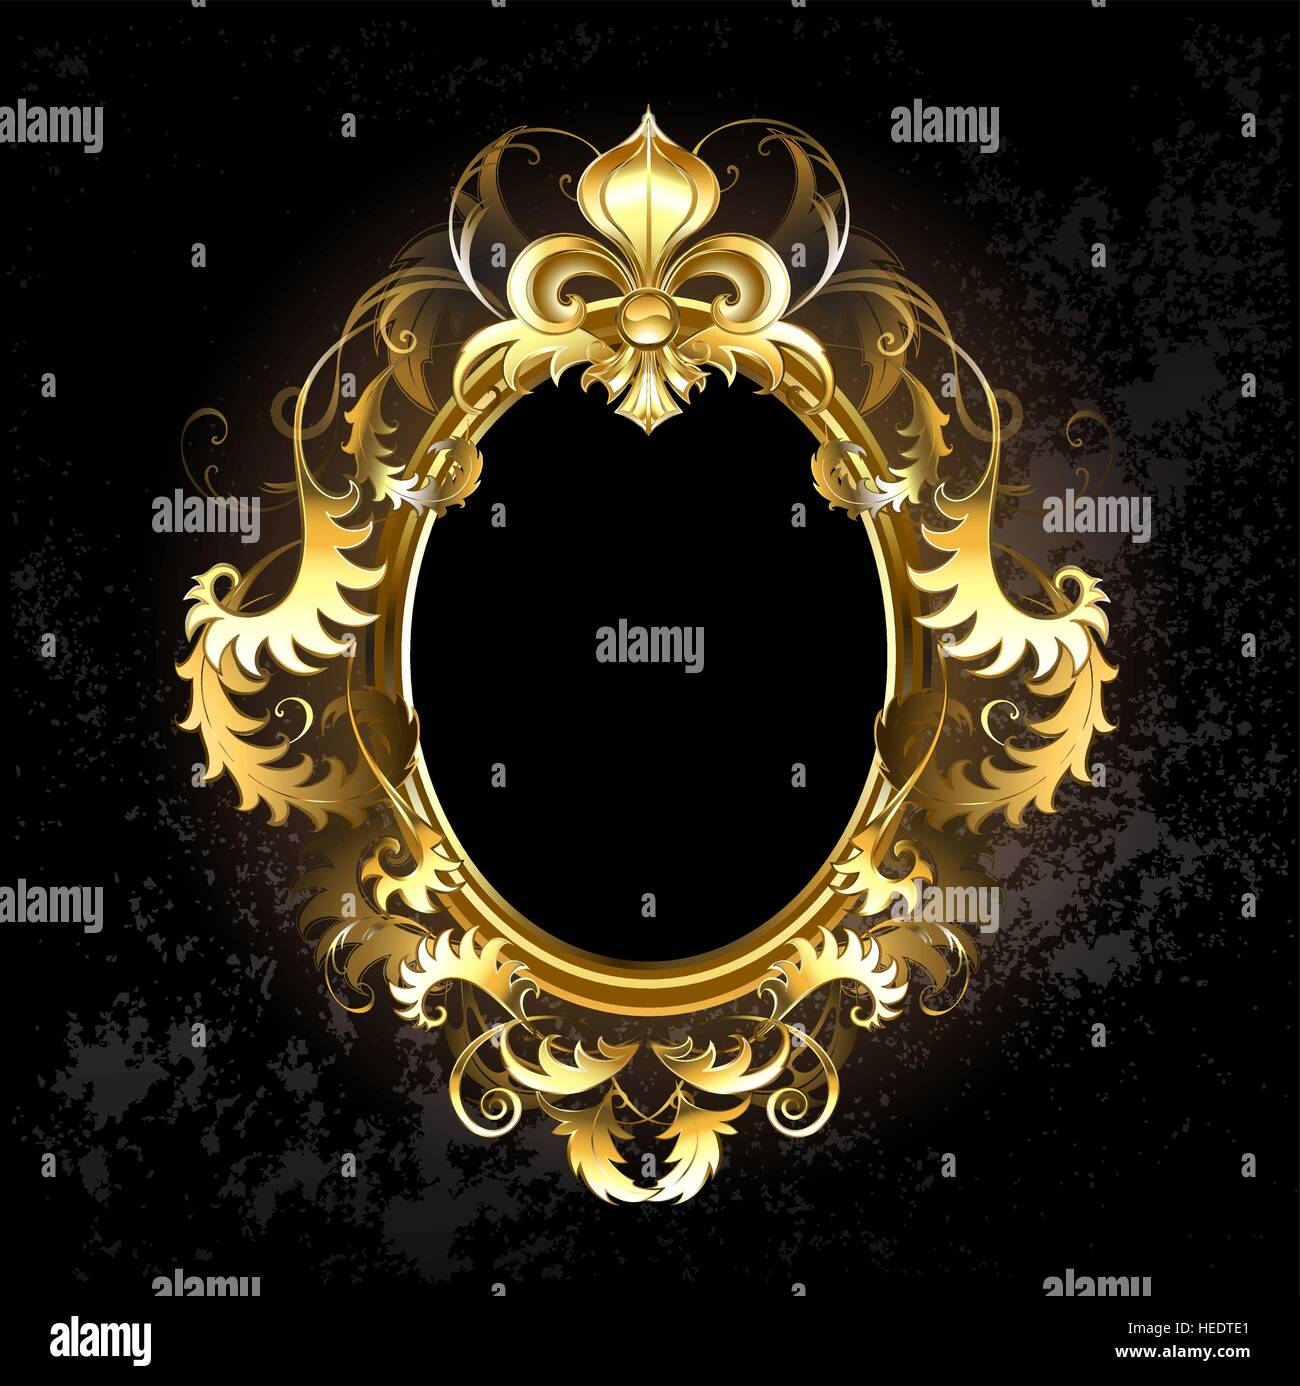 Oval Jewelry Banner Framed Golden Ornament With A Gold Fleur De Lis